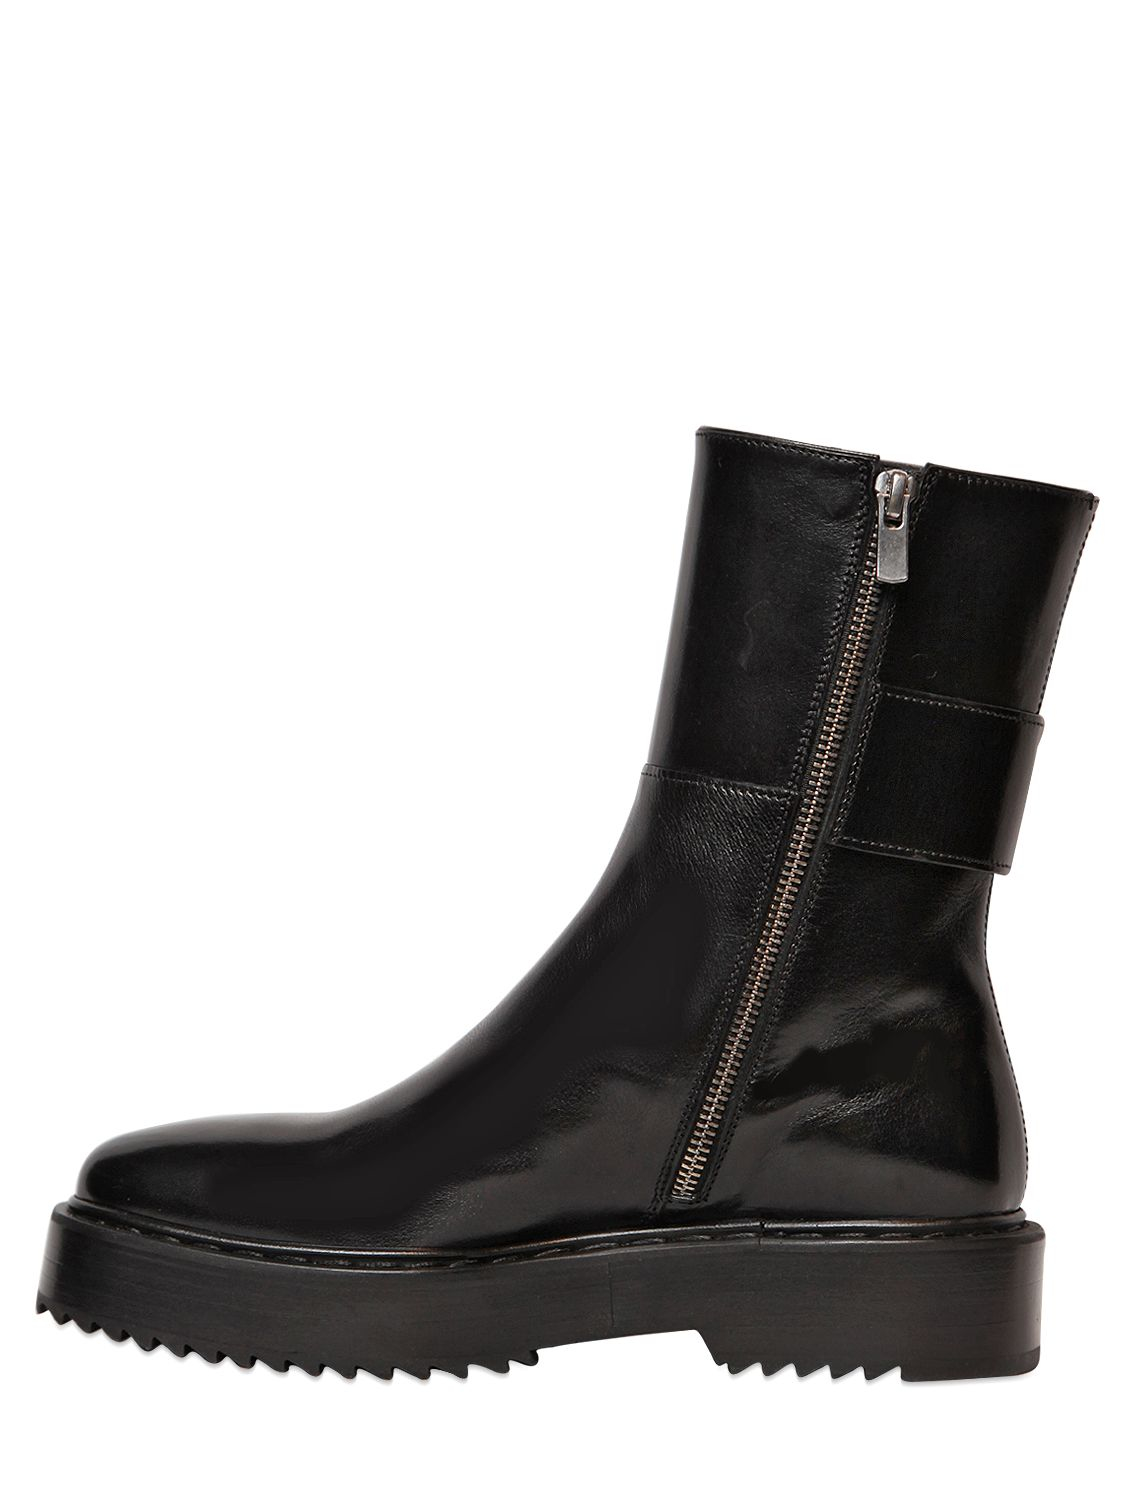 Officine Creative 30mm Leather Boots in Black